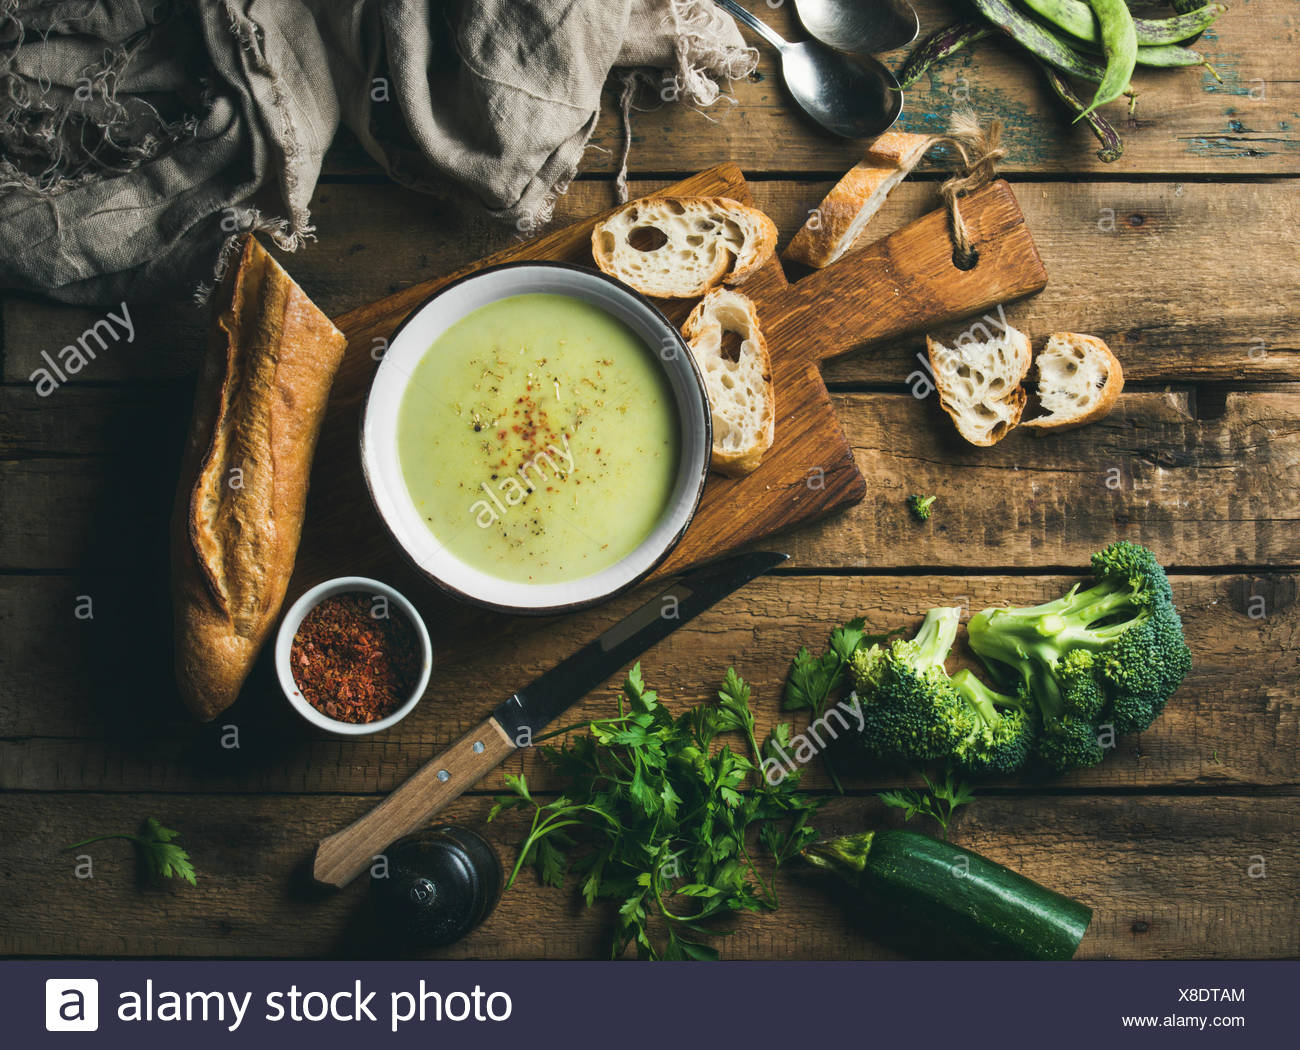 Homemade pea, broccoli, zucchini cream soup in white bowl with fresh baguette on wooden board over rustic background, top view, - Stock Image